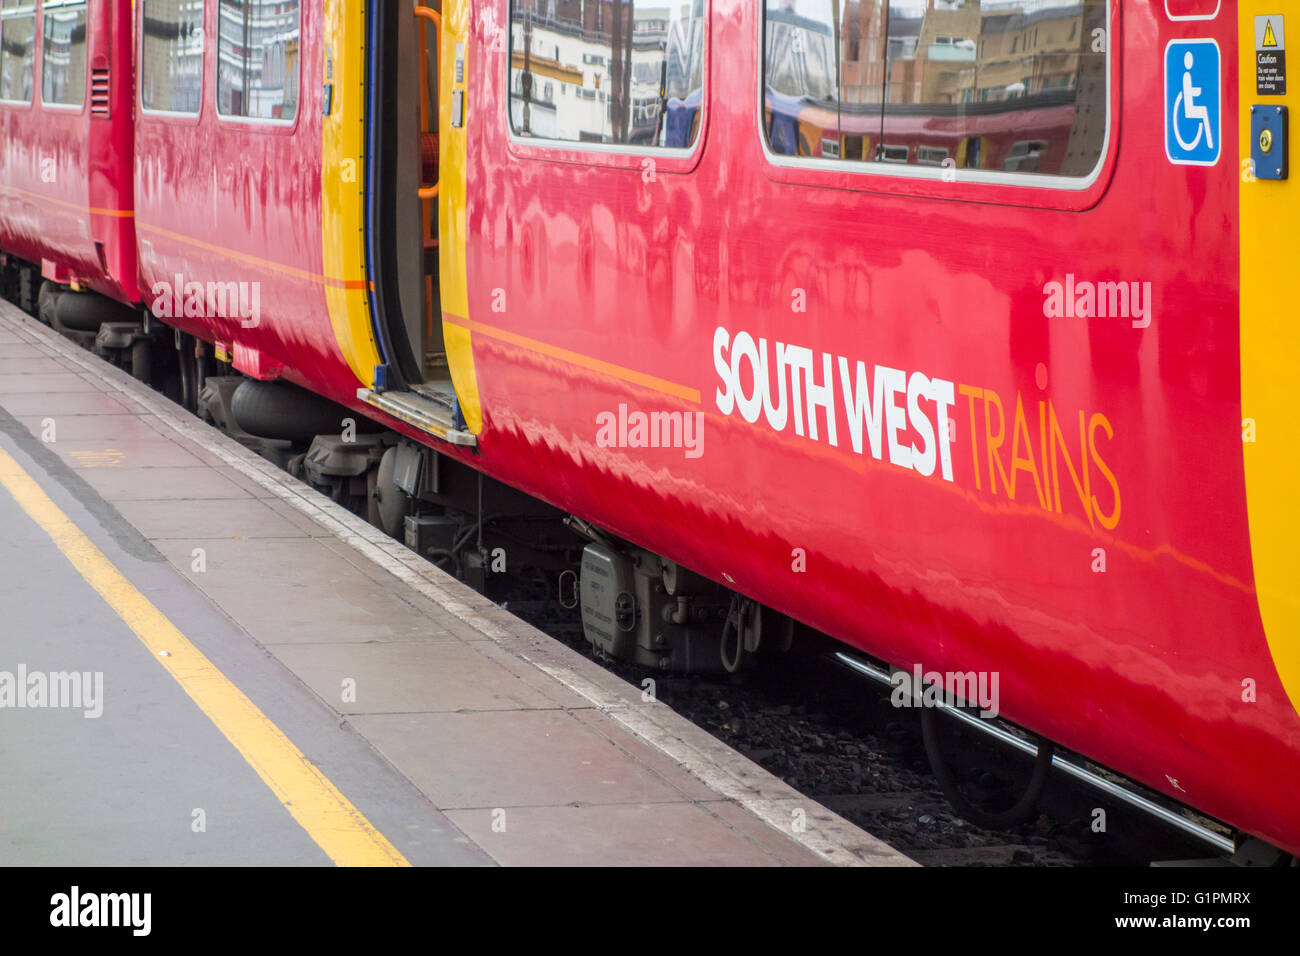 South West trains service at London Waterloo Station, UK. - Stock Image